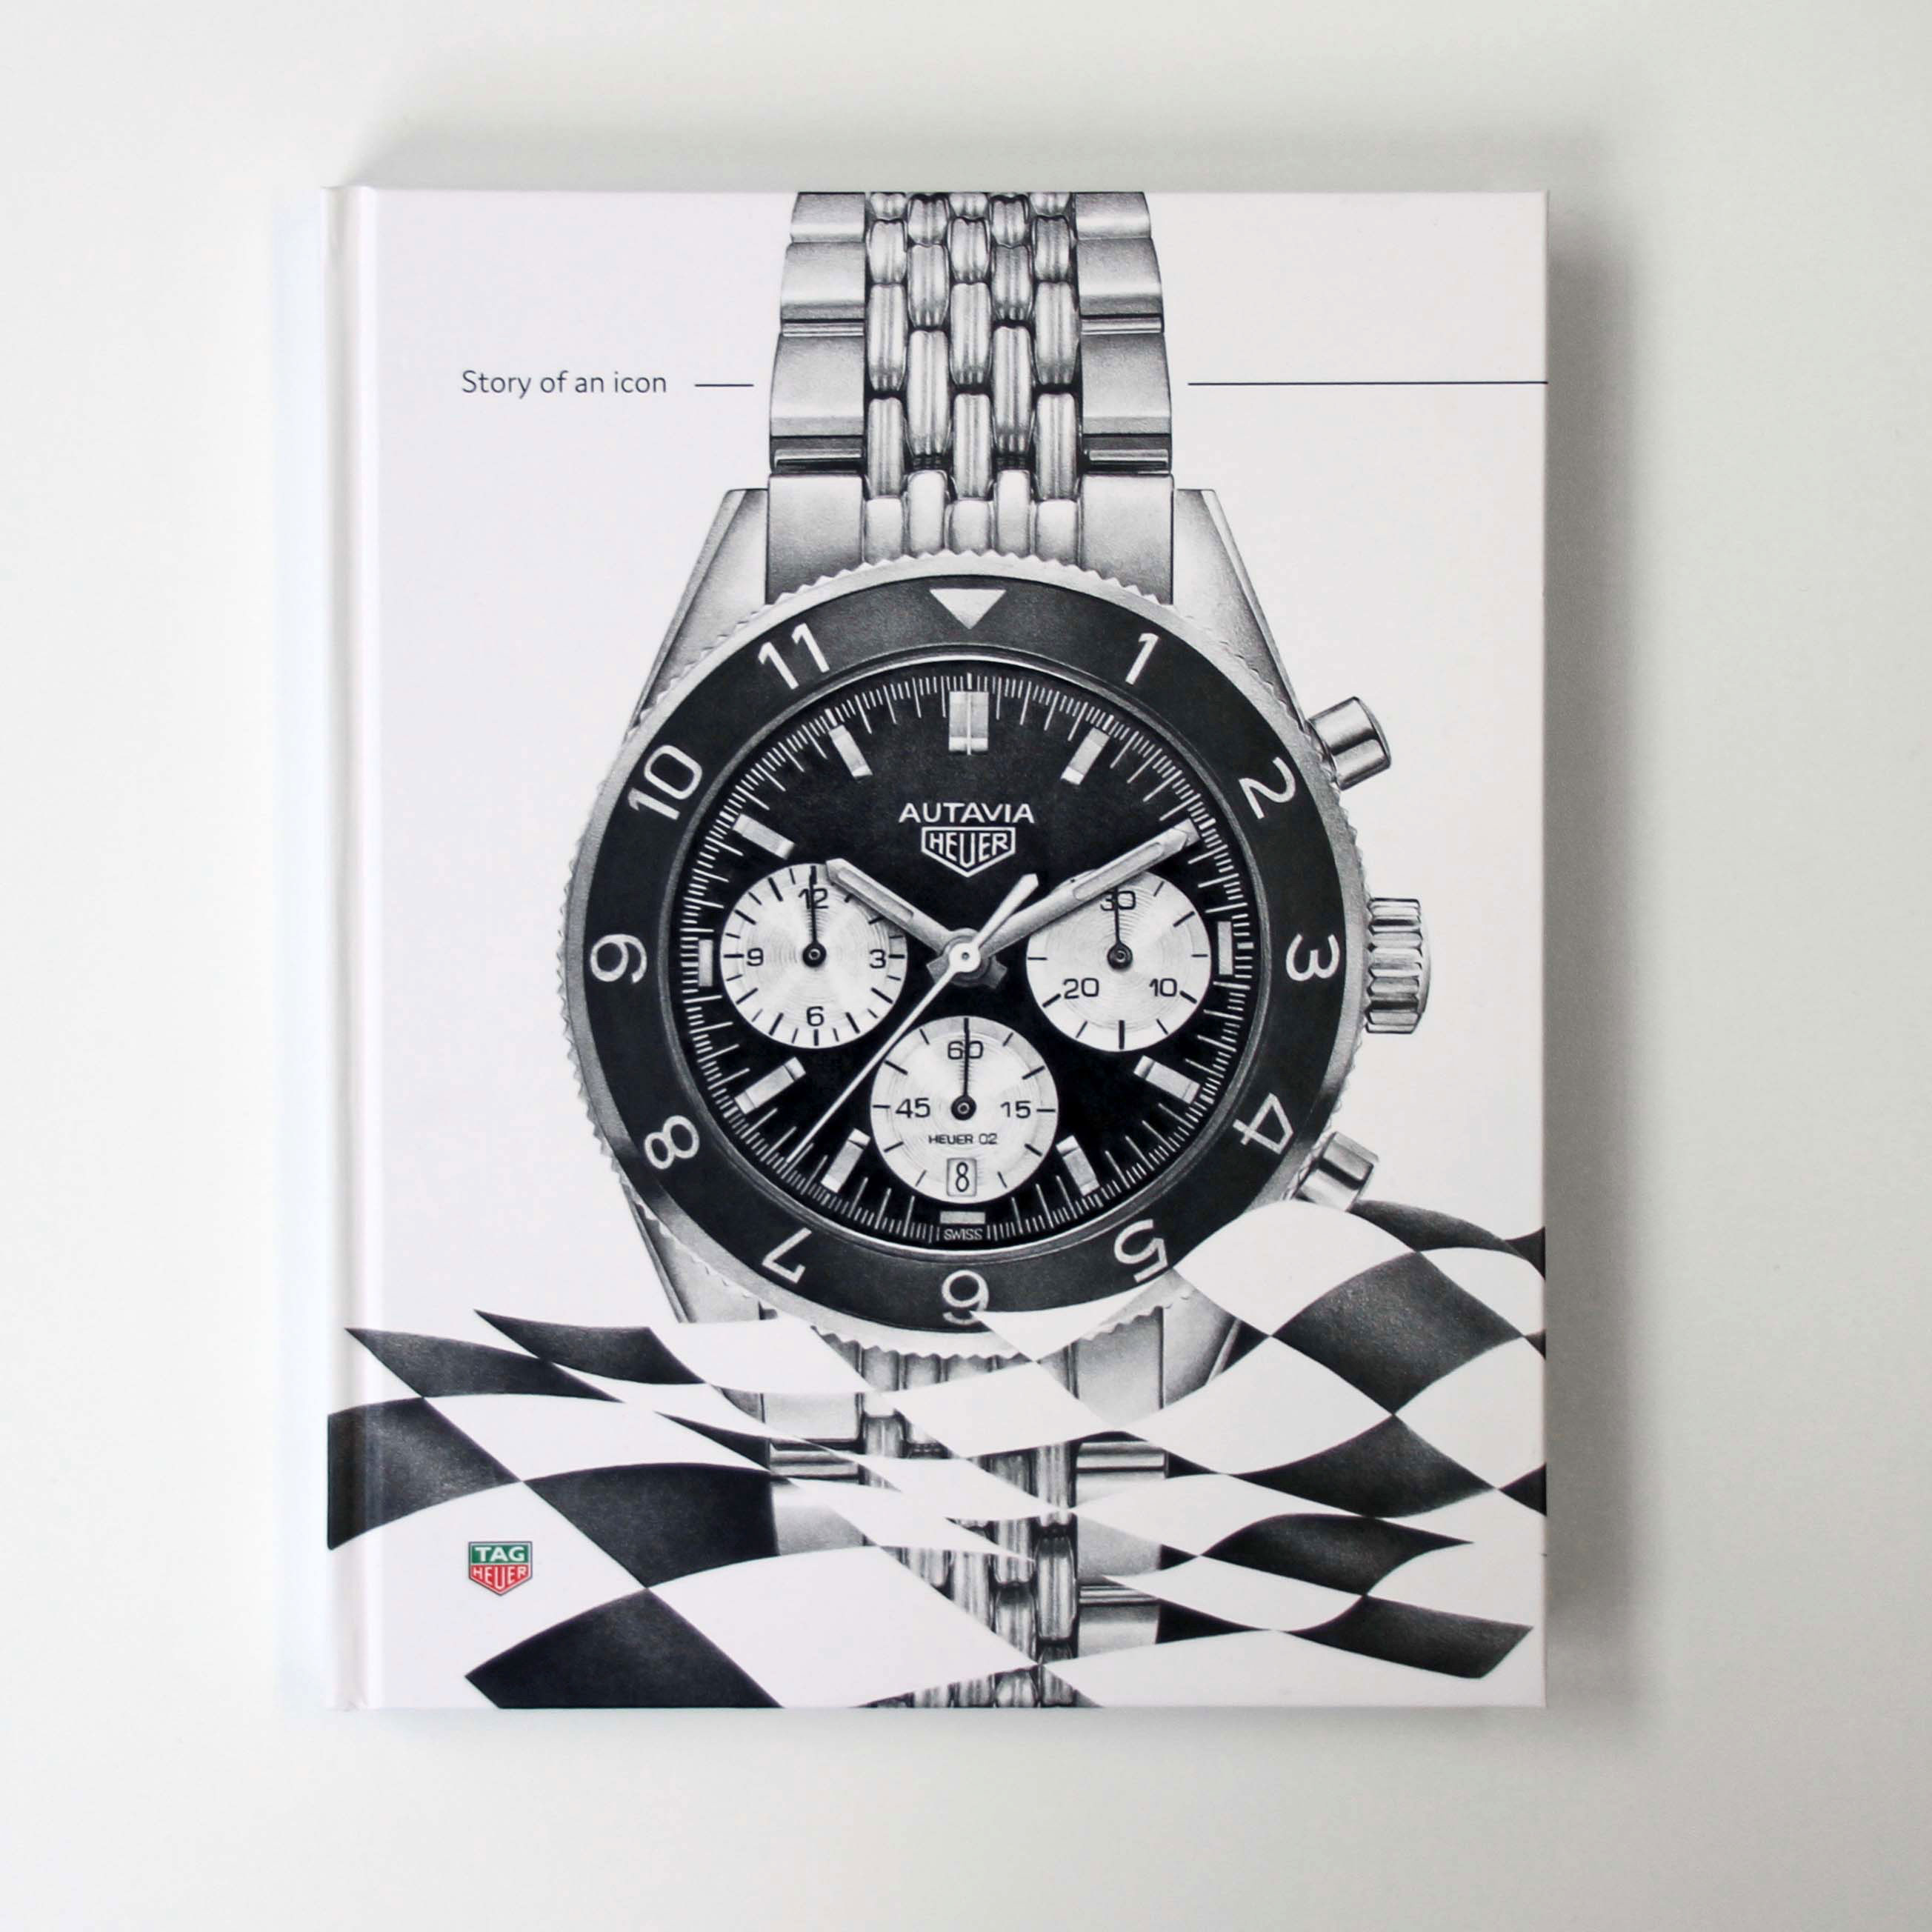 Autavia story of an icon book